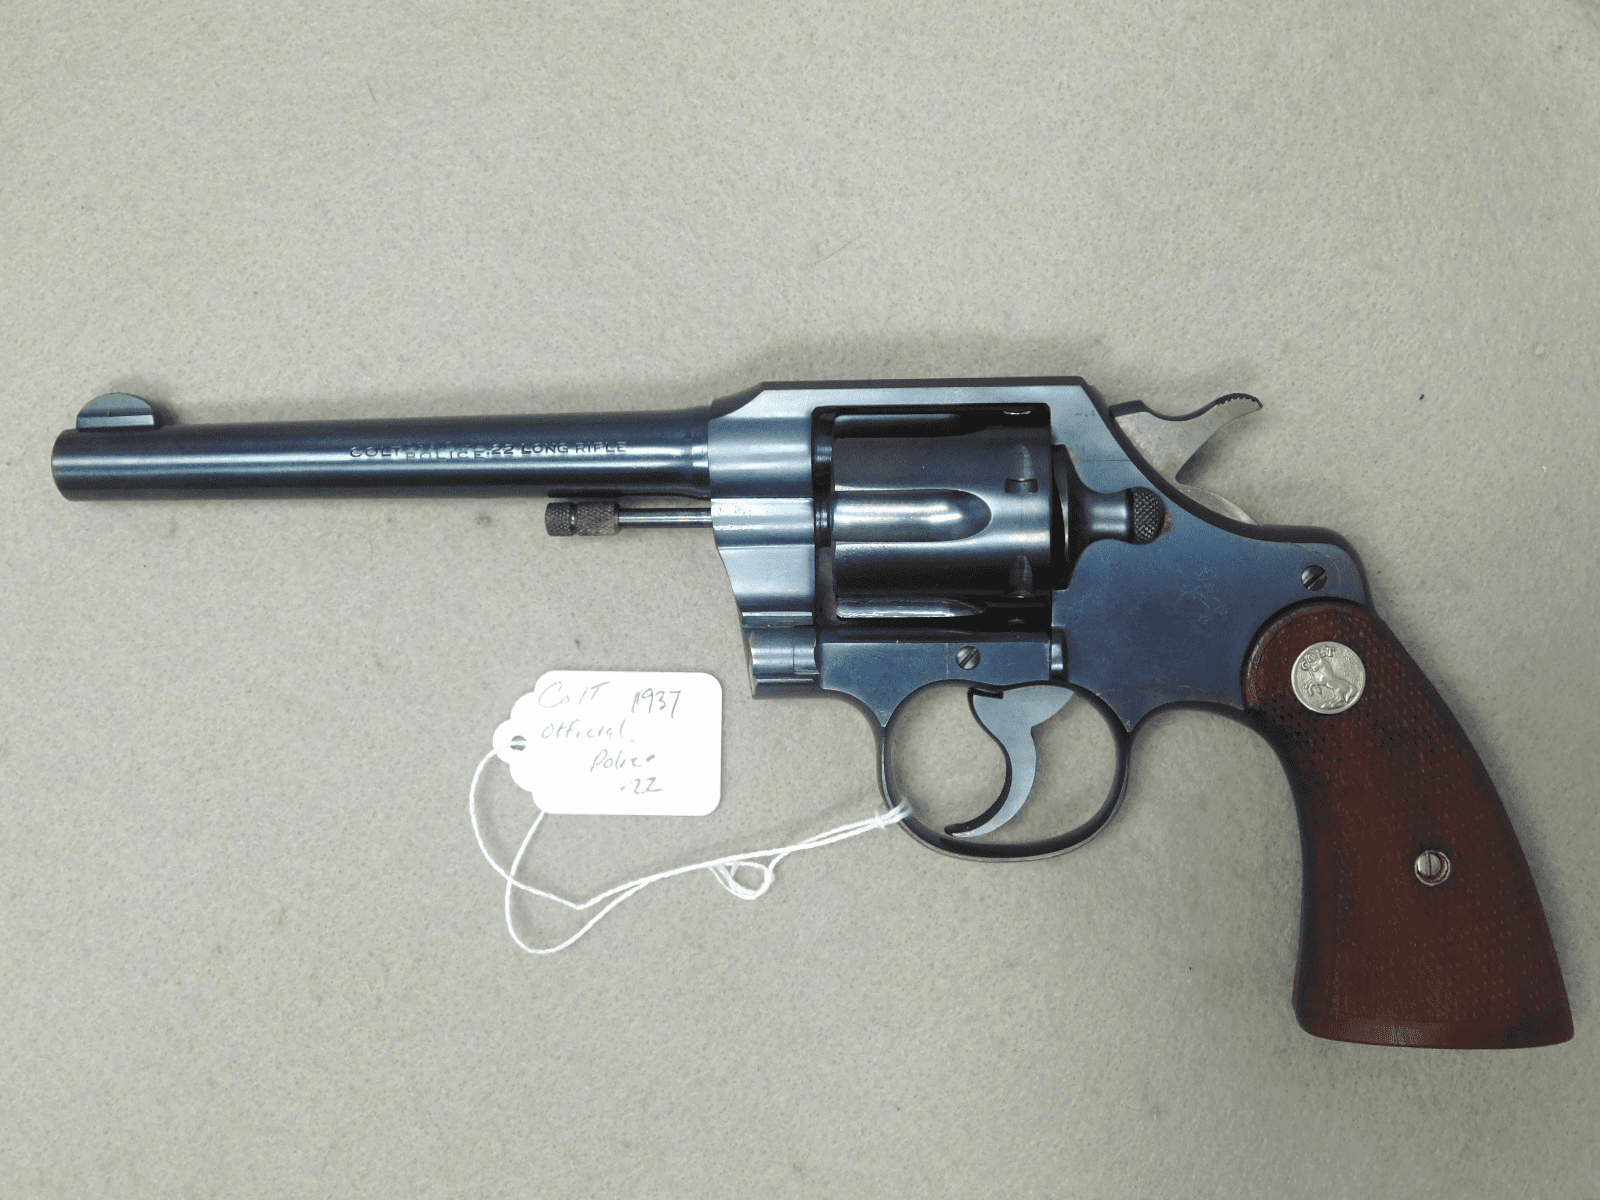 Colt official police .22 yr 1937